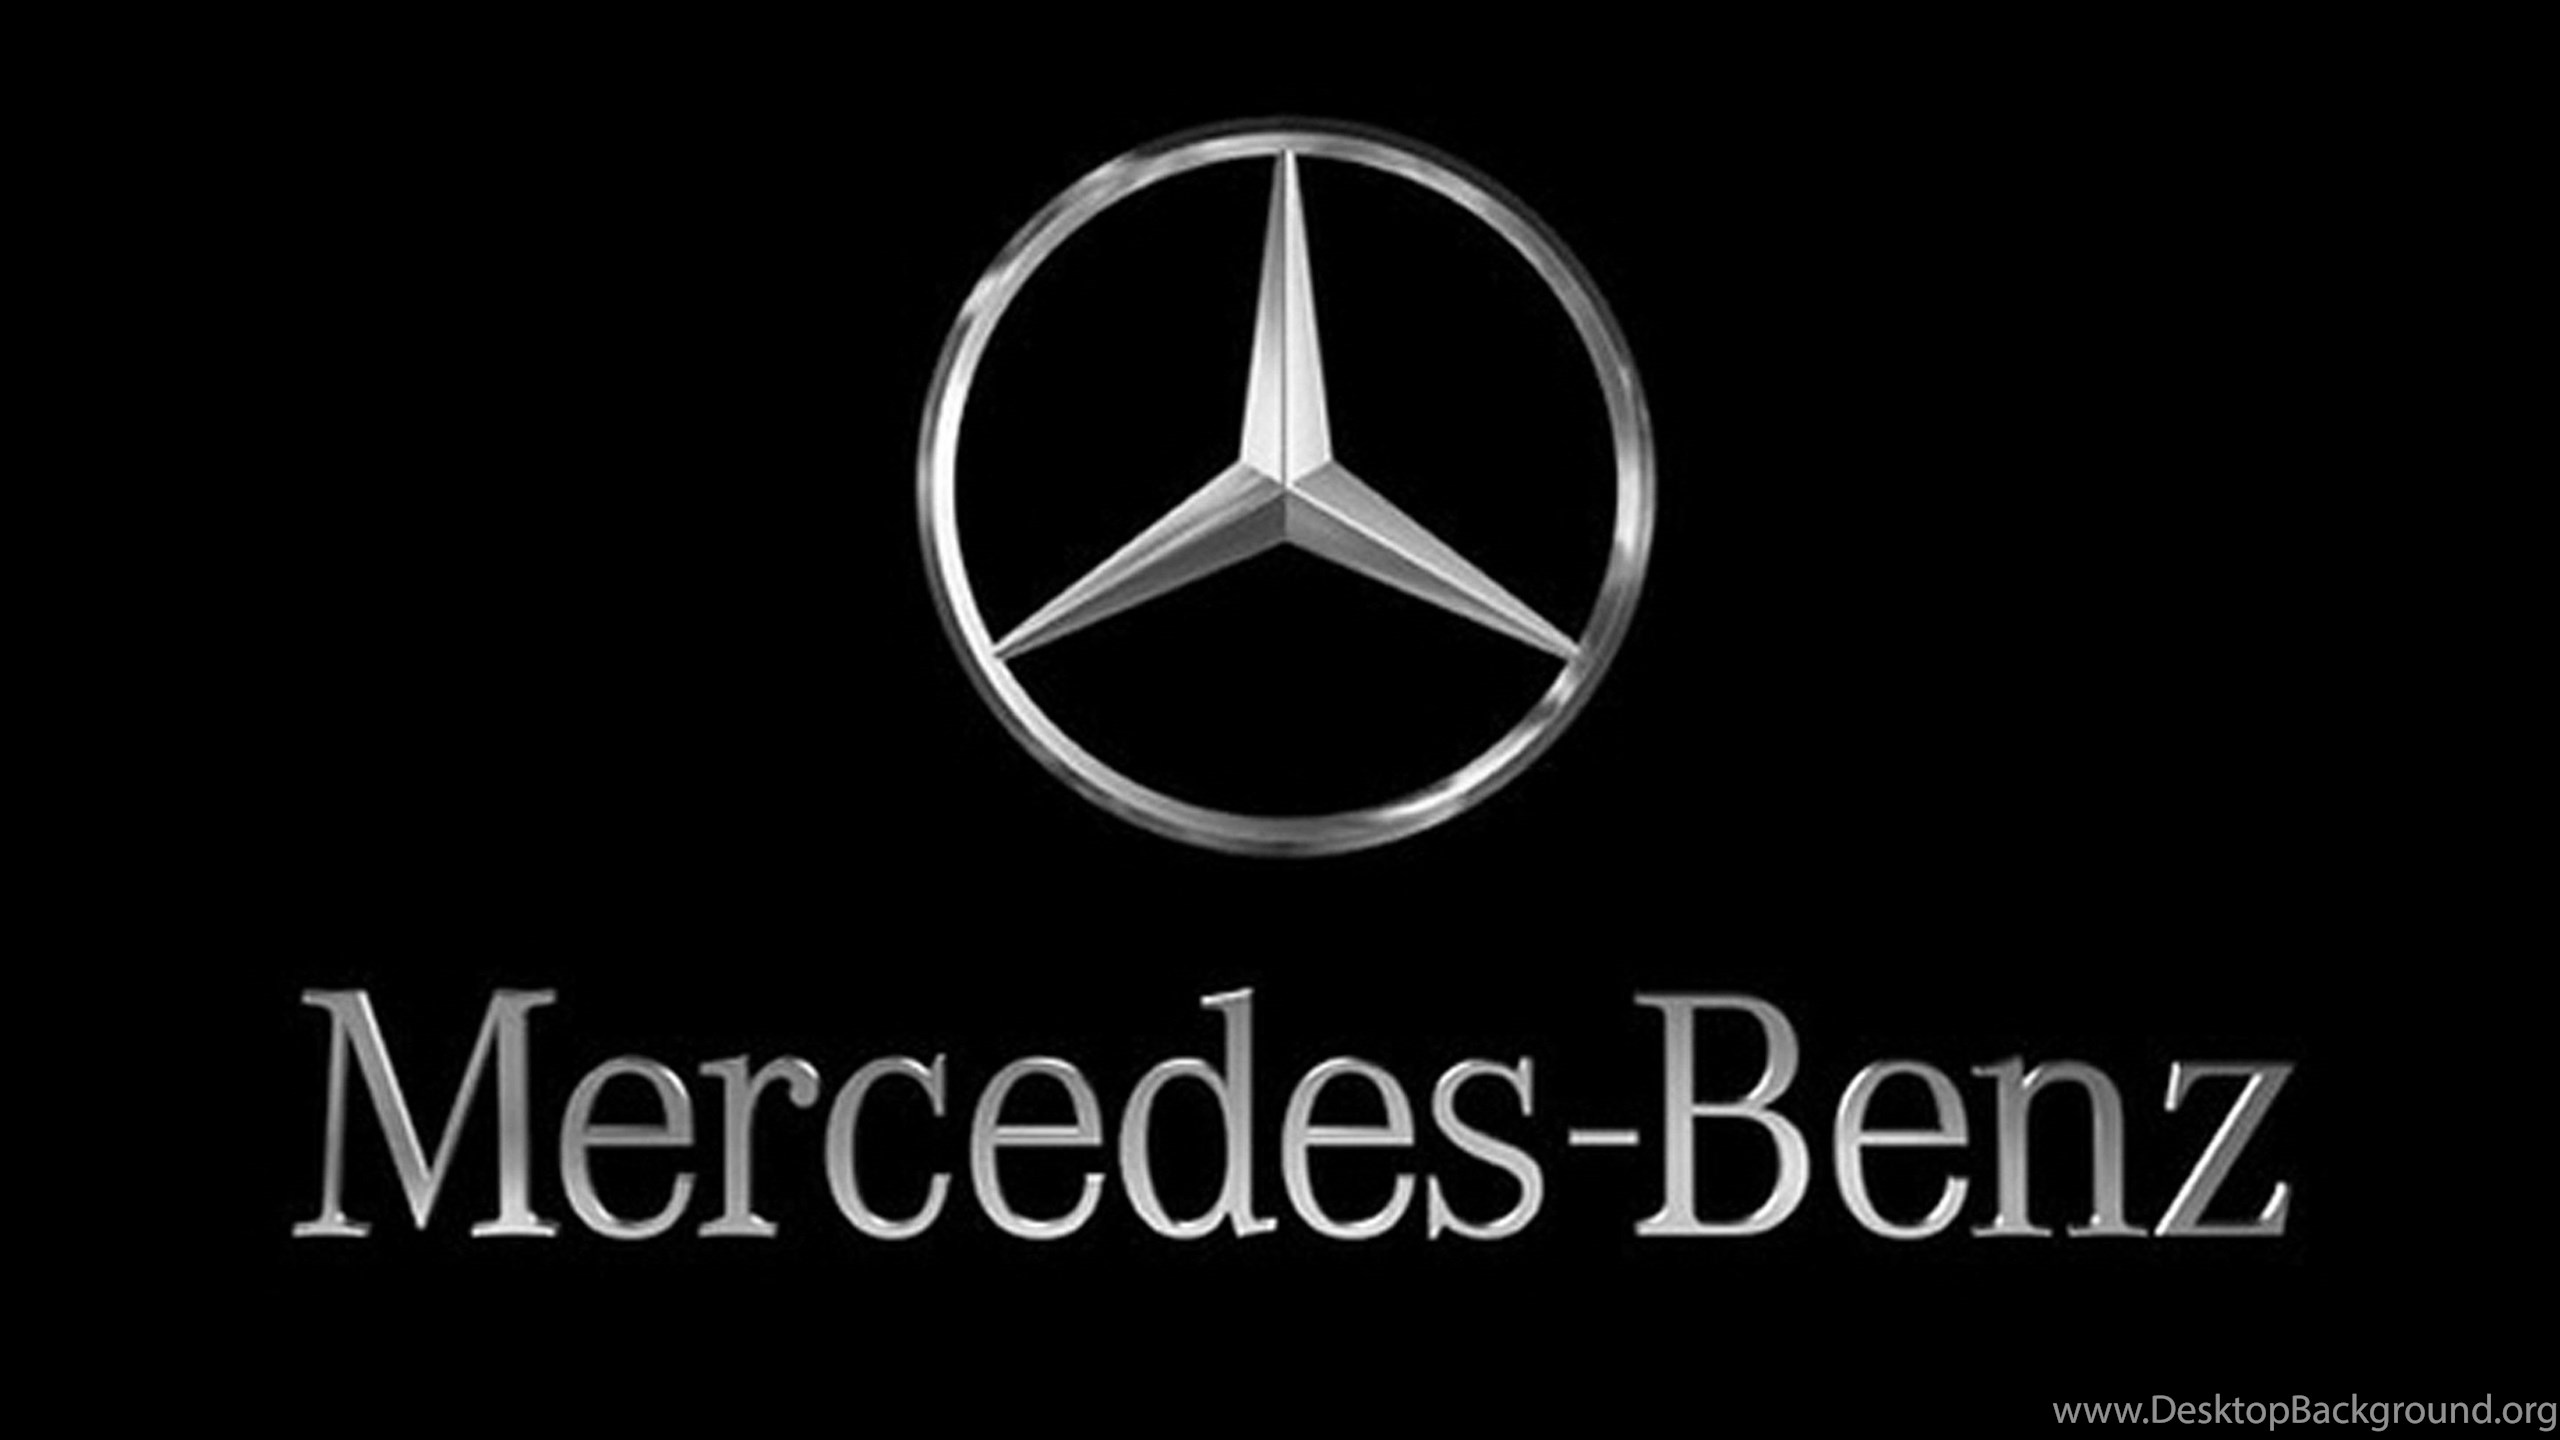 Mercedes benz logo wallpapers desktop background netbook voltagebd Gallery